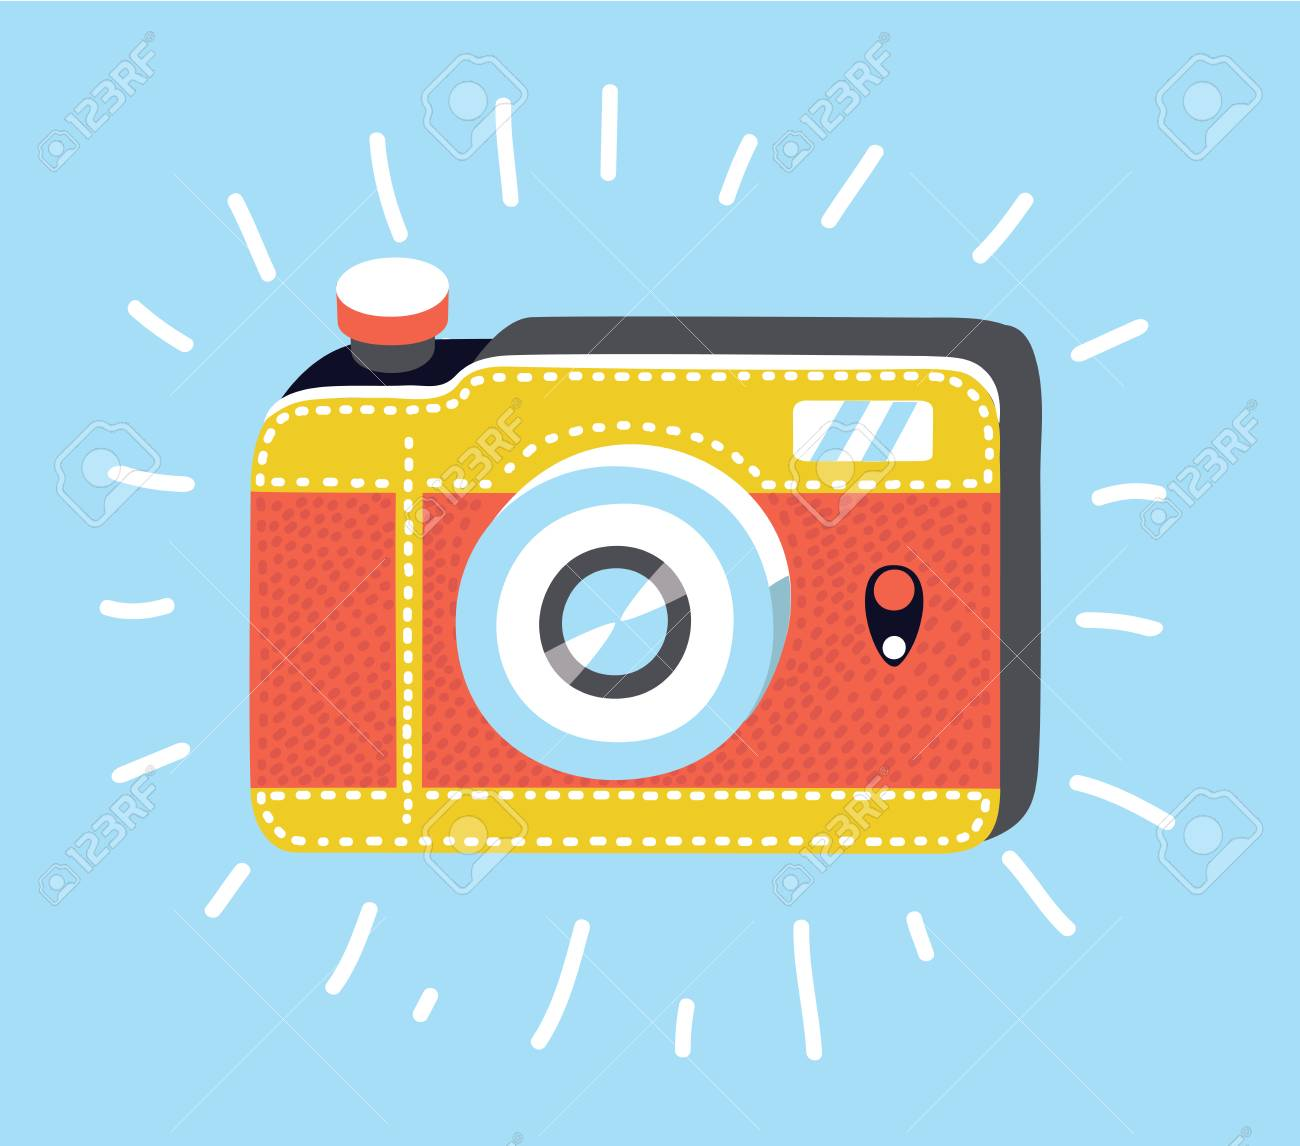 Vecotr Cartoon Illustration Of Camera Icon In Trendystyle Isolated